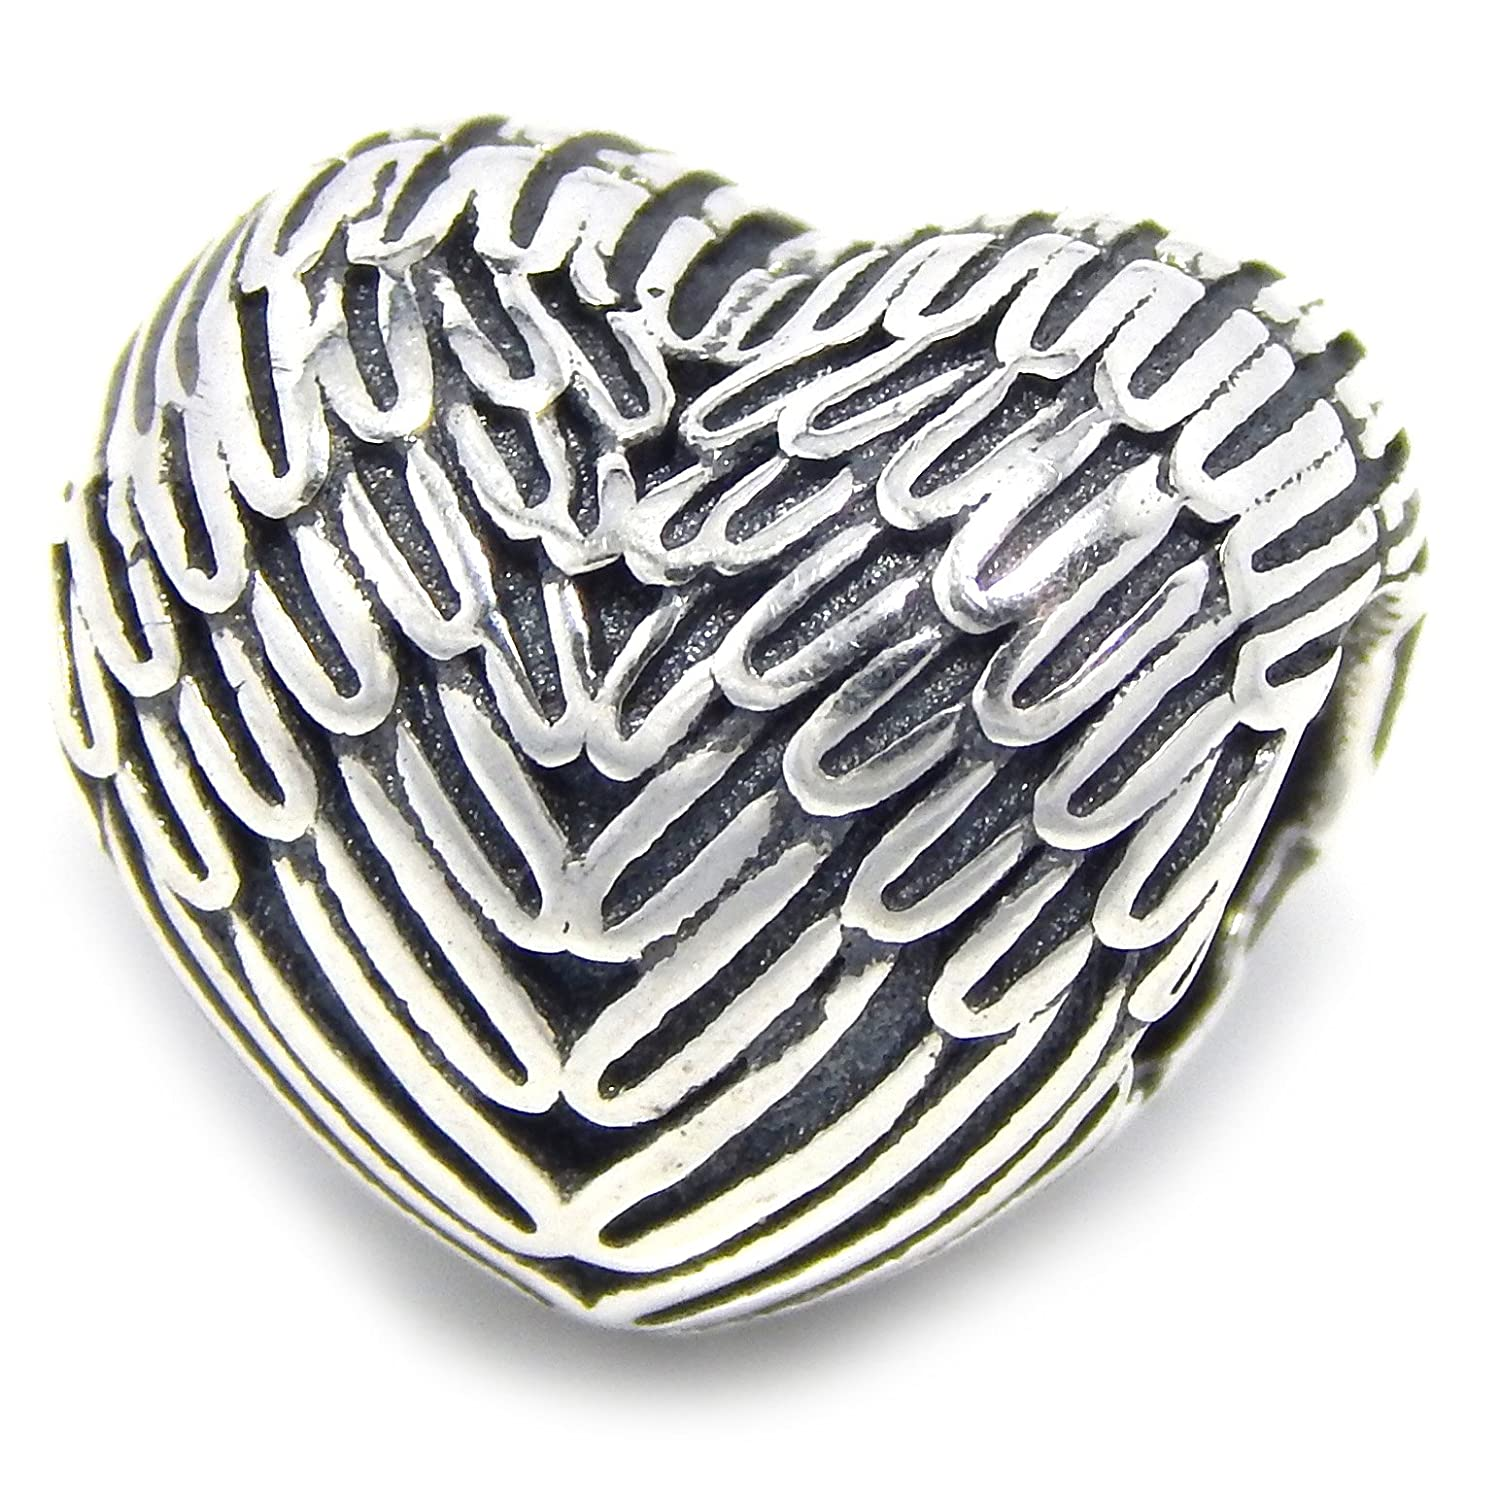 ICYROSE Solid 925 Sterling Silver Heart with Wing Design Charm Bead 411 for European Snake Chain Bracelets